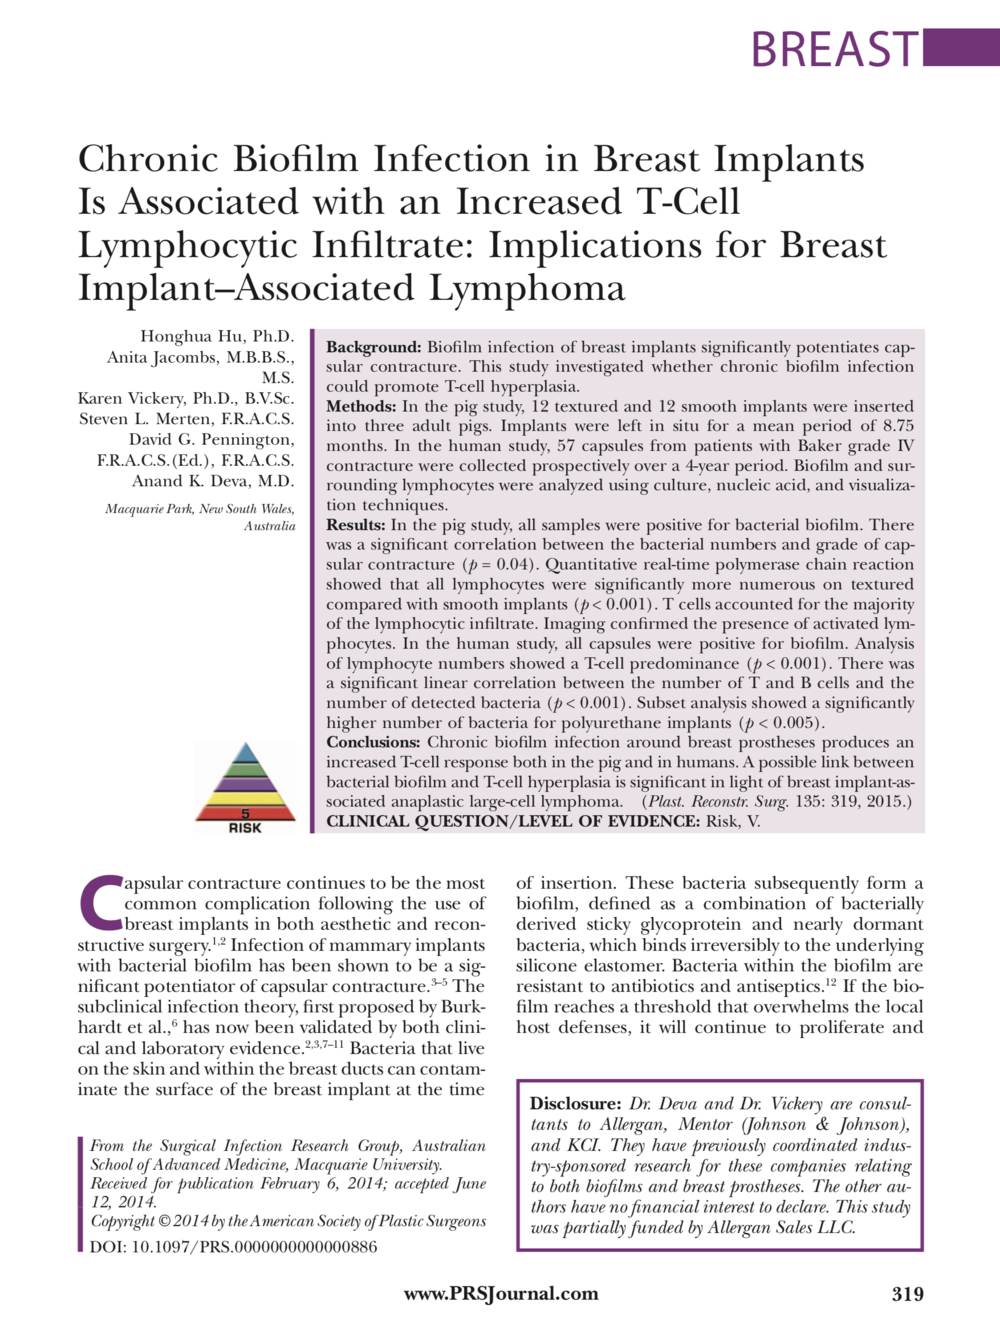 Chronic Biofilm Infection in Breast Implants - is associated with increased T-Cell lymphocytic infiltrate: implications for breast implant-associated lymphoma